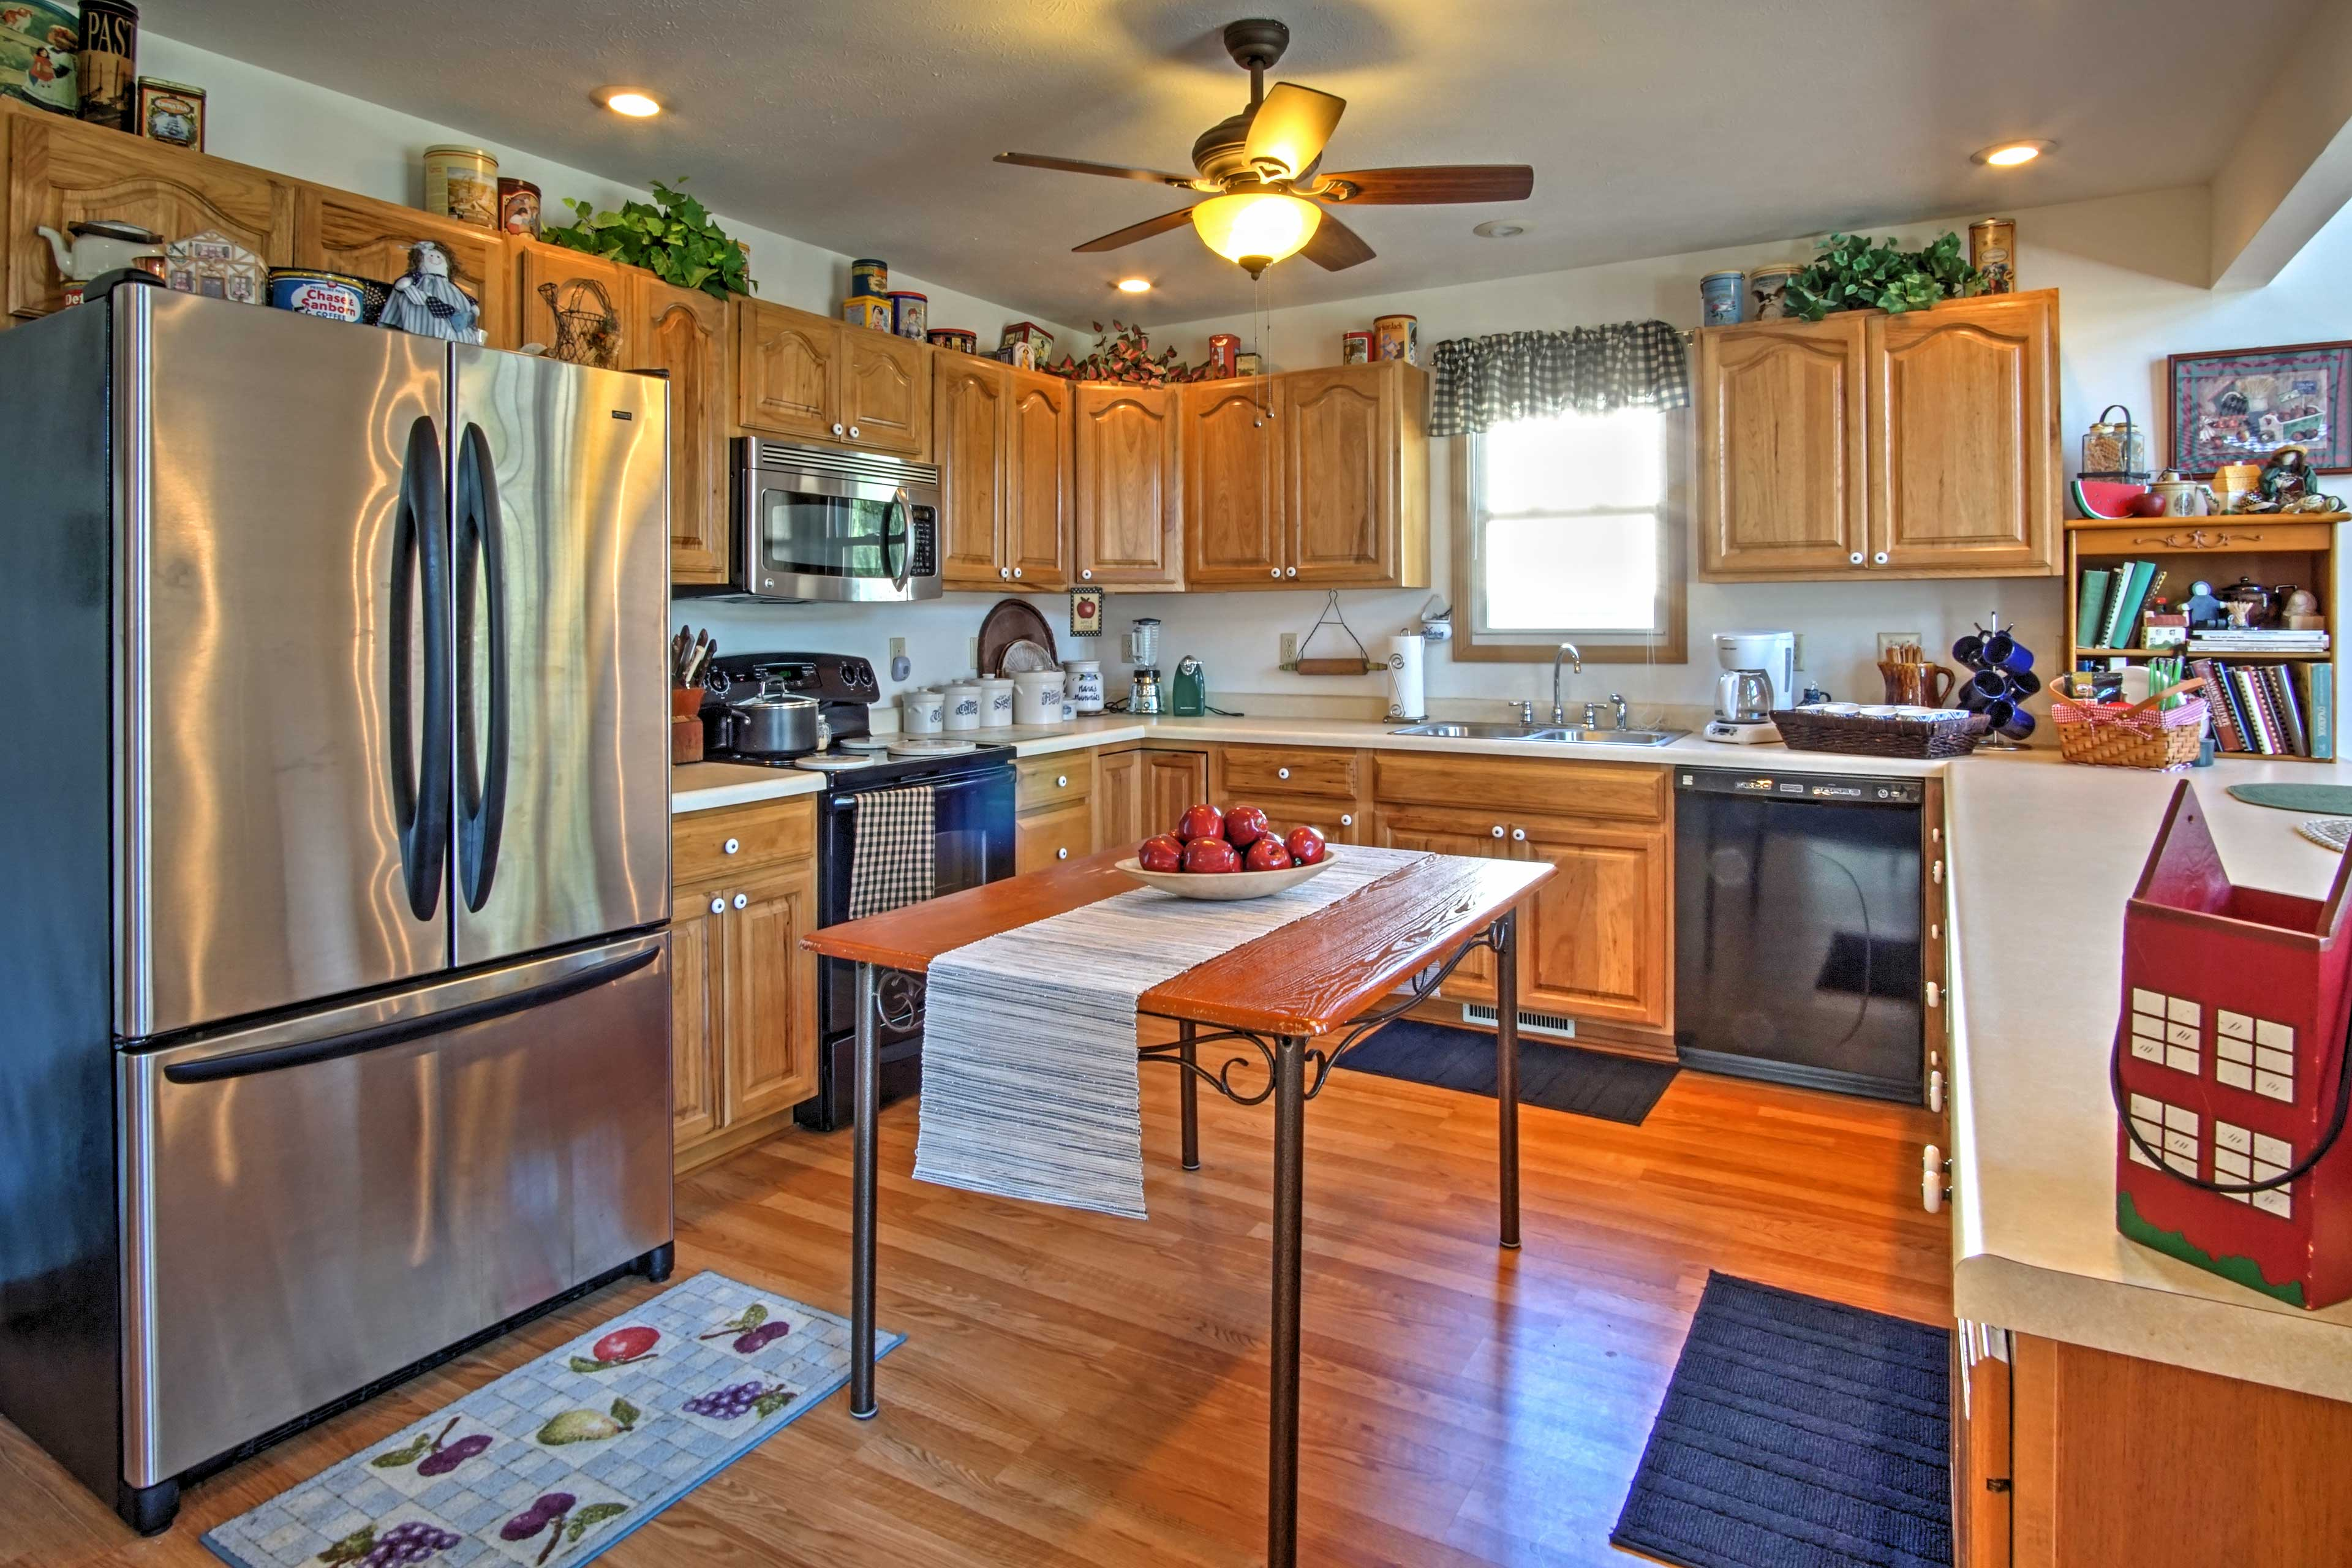 The kitchen includes all your essential appliances and a breakfast bar.